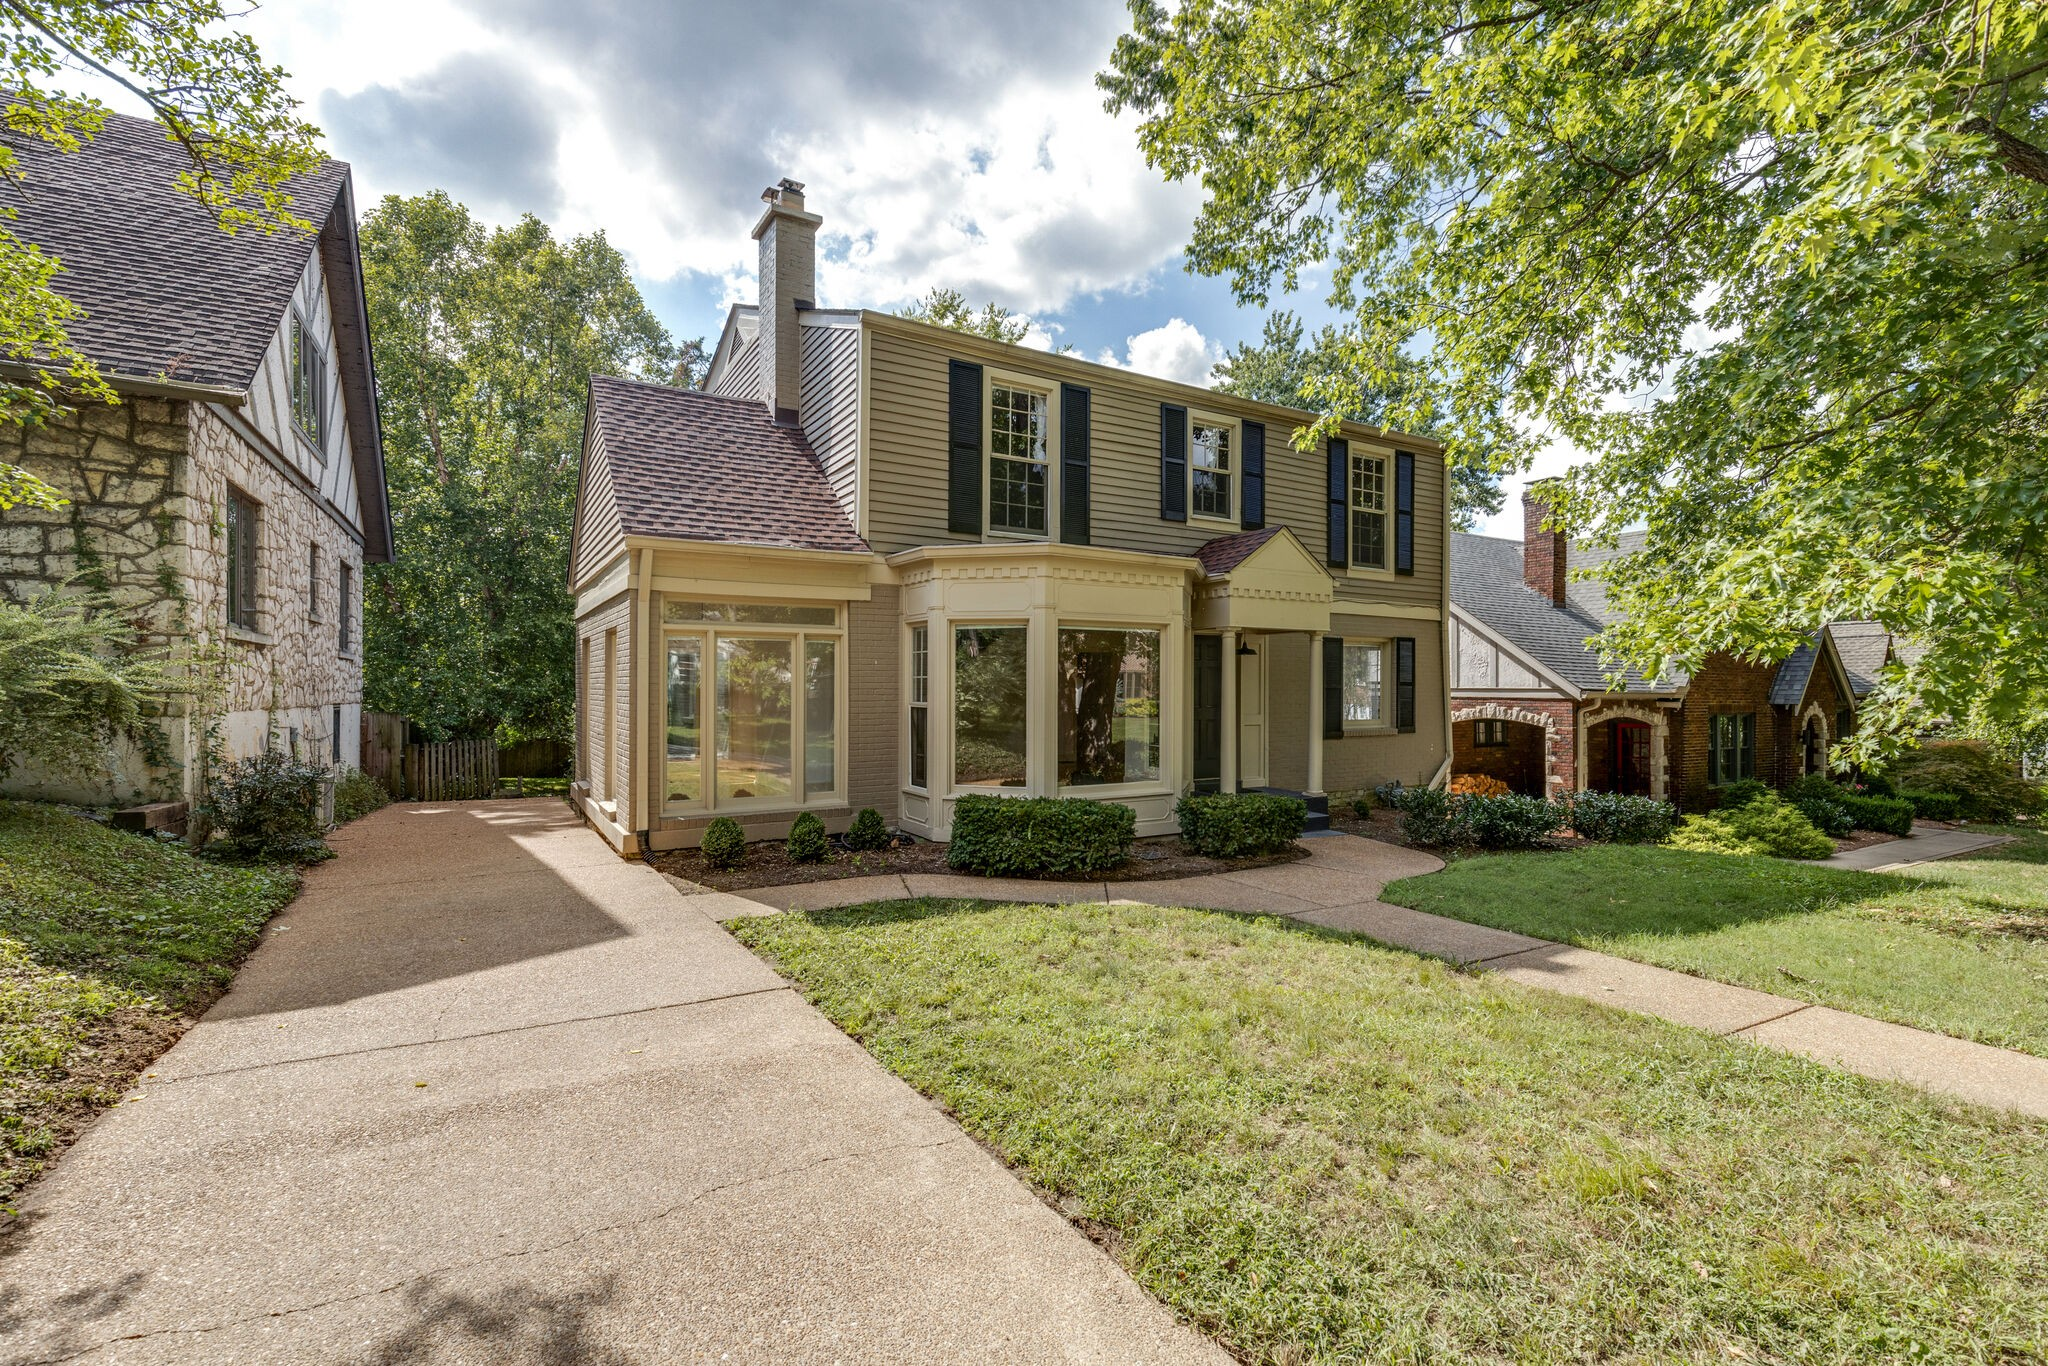 This charming home in Historic Richland's Cherokee Park features stunning hardwoods, renovated kitchen, spacious formal dining room, large living room with built-ins, master suite with balcony and soaker tub and sunroom perfect for a quiet get away. Entertain on the large deck overlooking the private backyard. Fully finished Basement has kitchenette, bedroom and bath ideal for in-law suite. Incredible location minutes from Richland Greenway and all things West End. A must see!